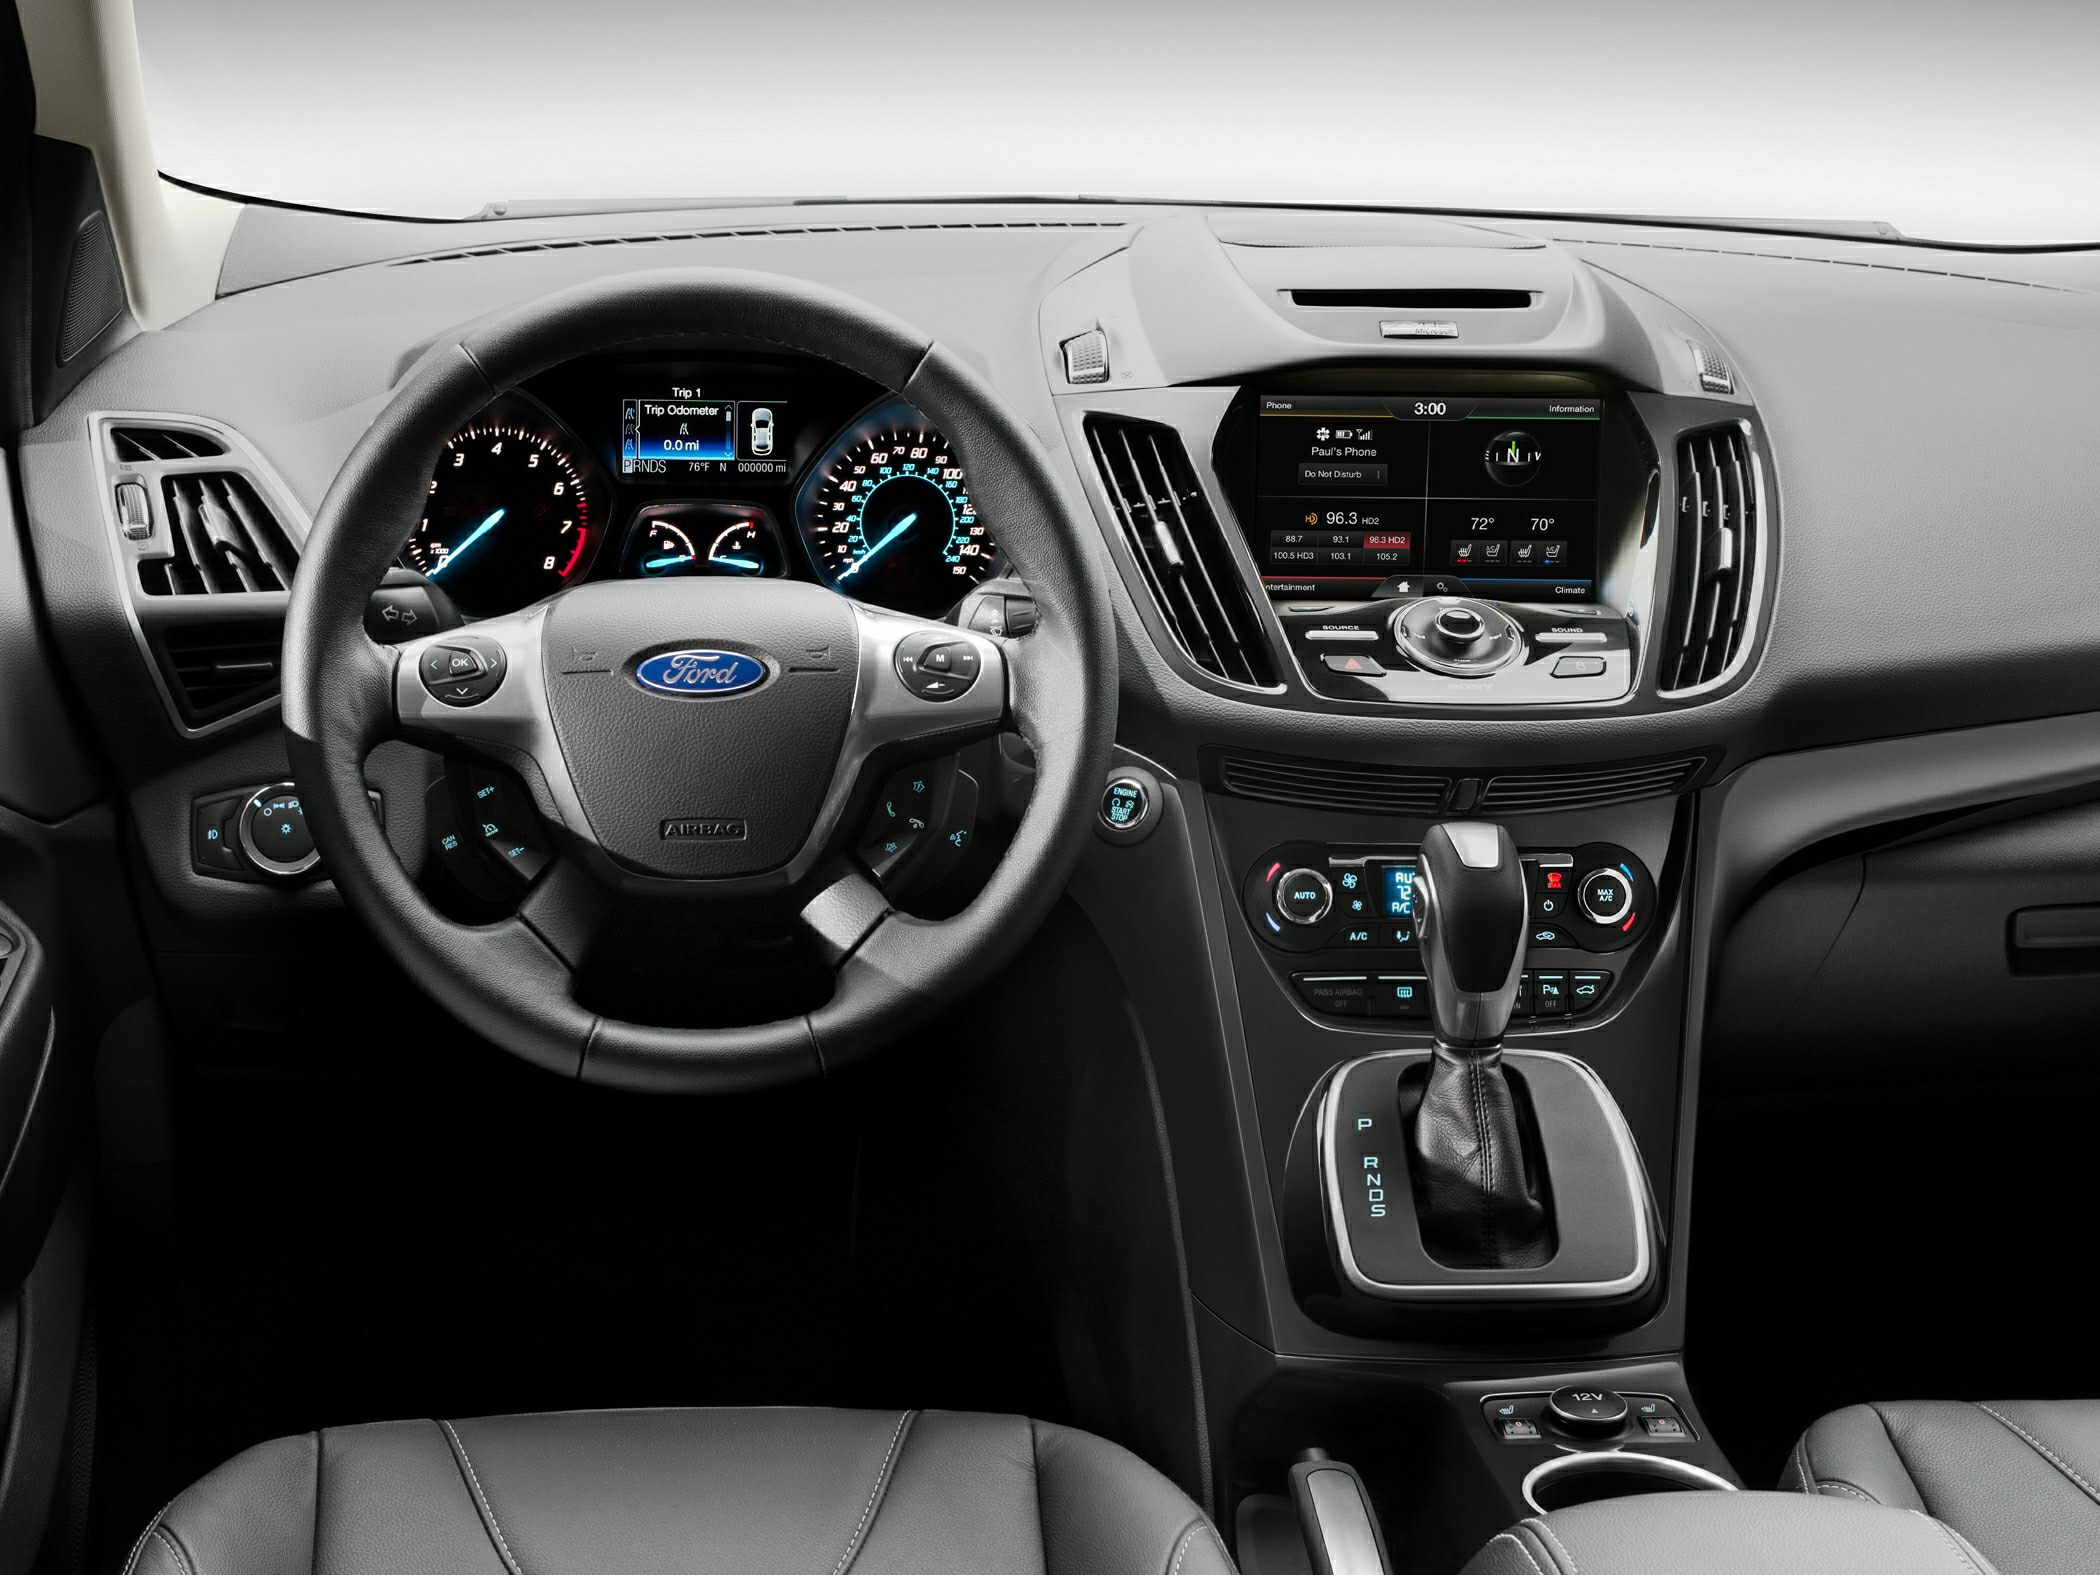 2014 Ford Escape Styles & Features Highlights